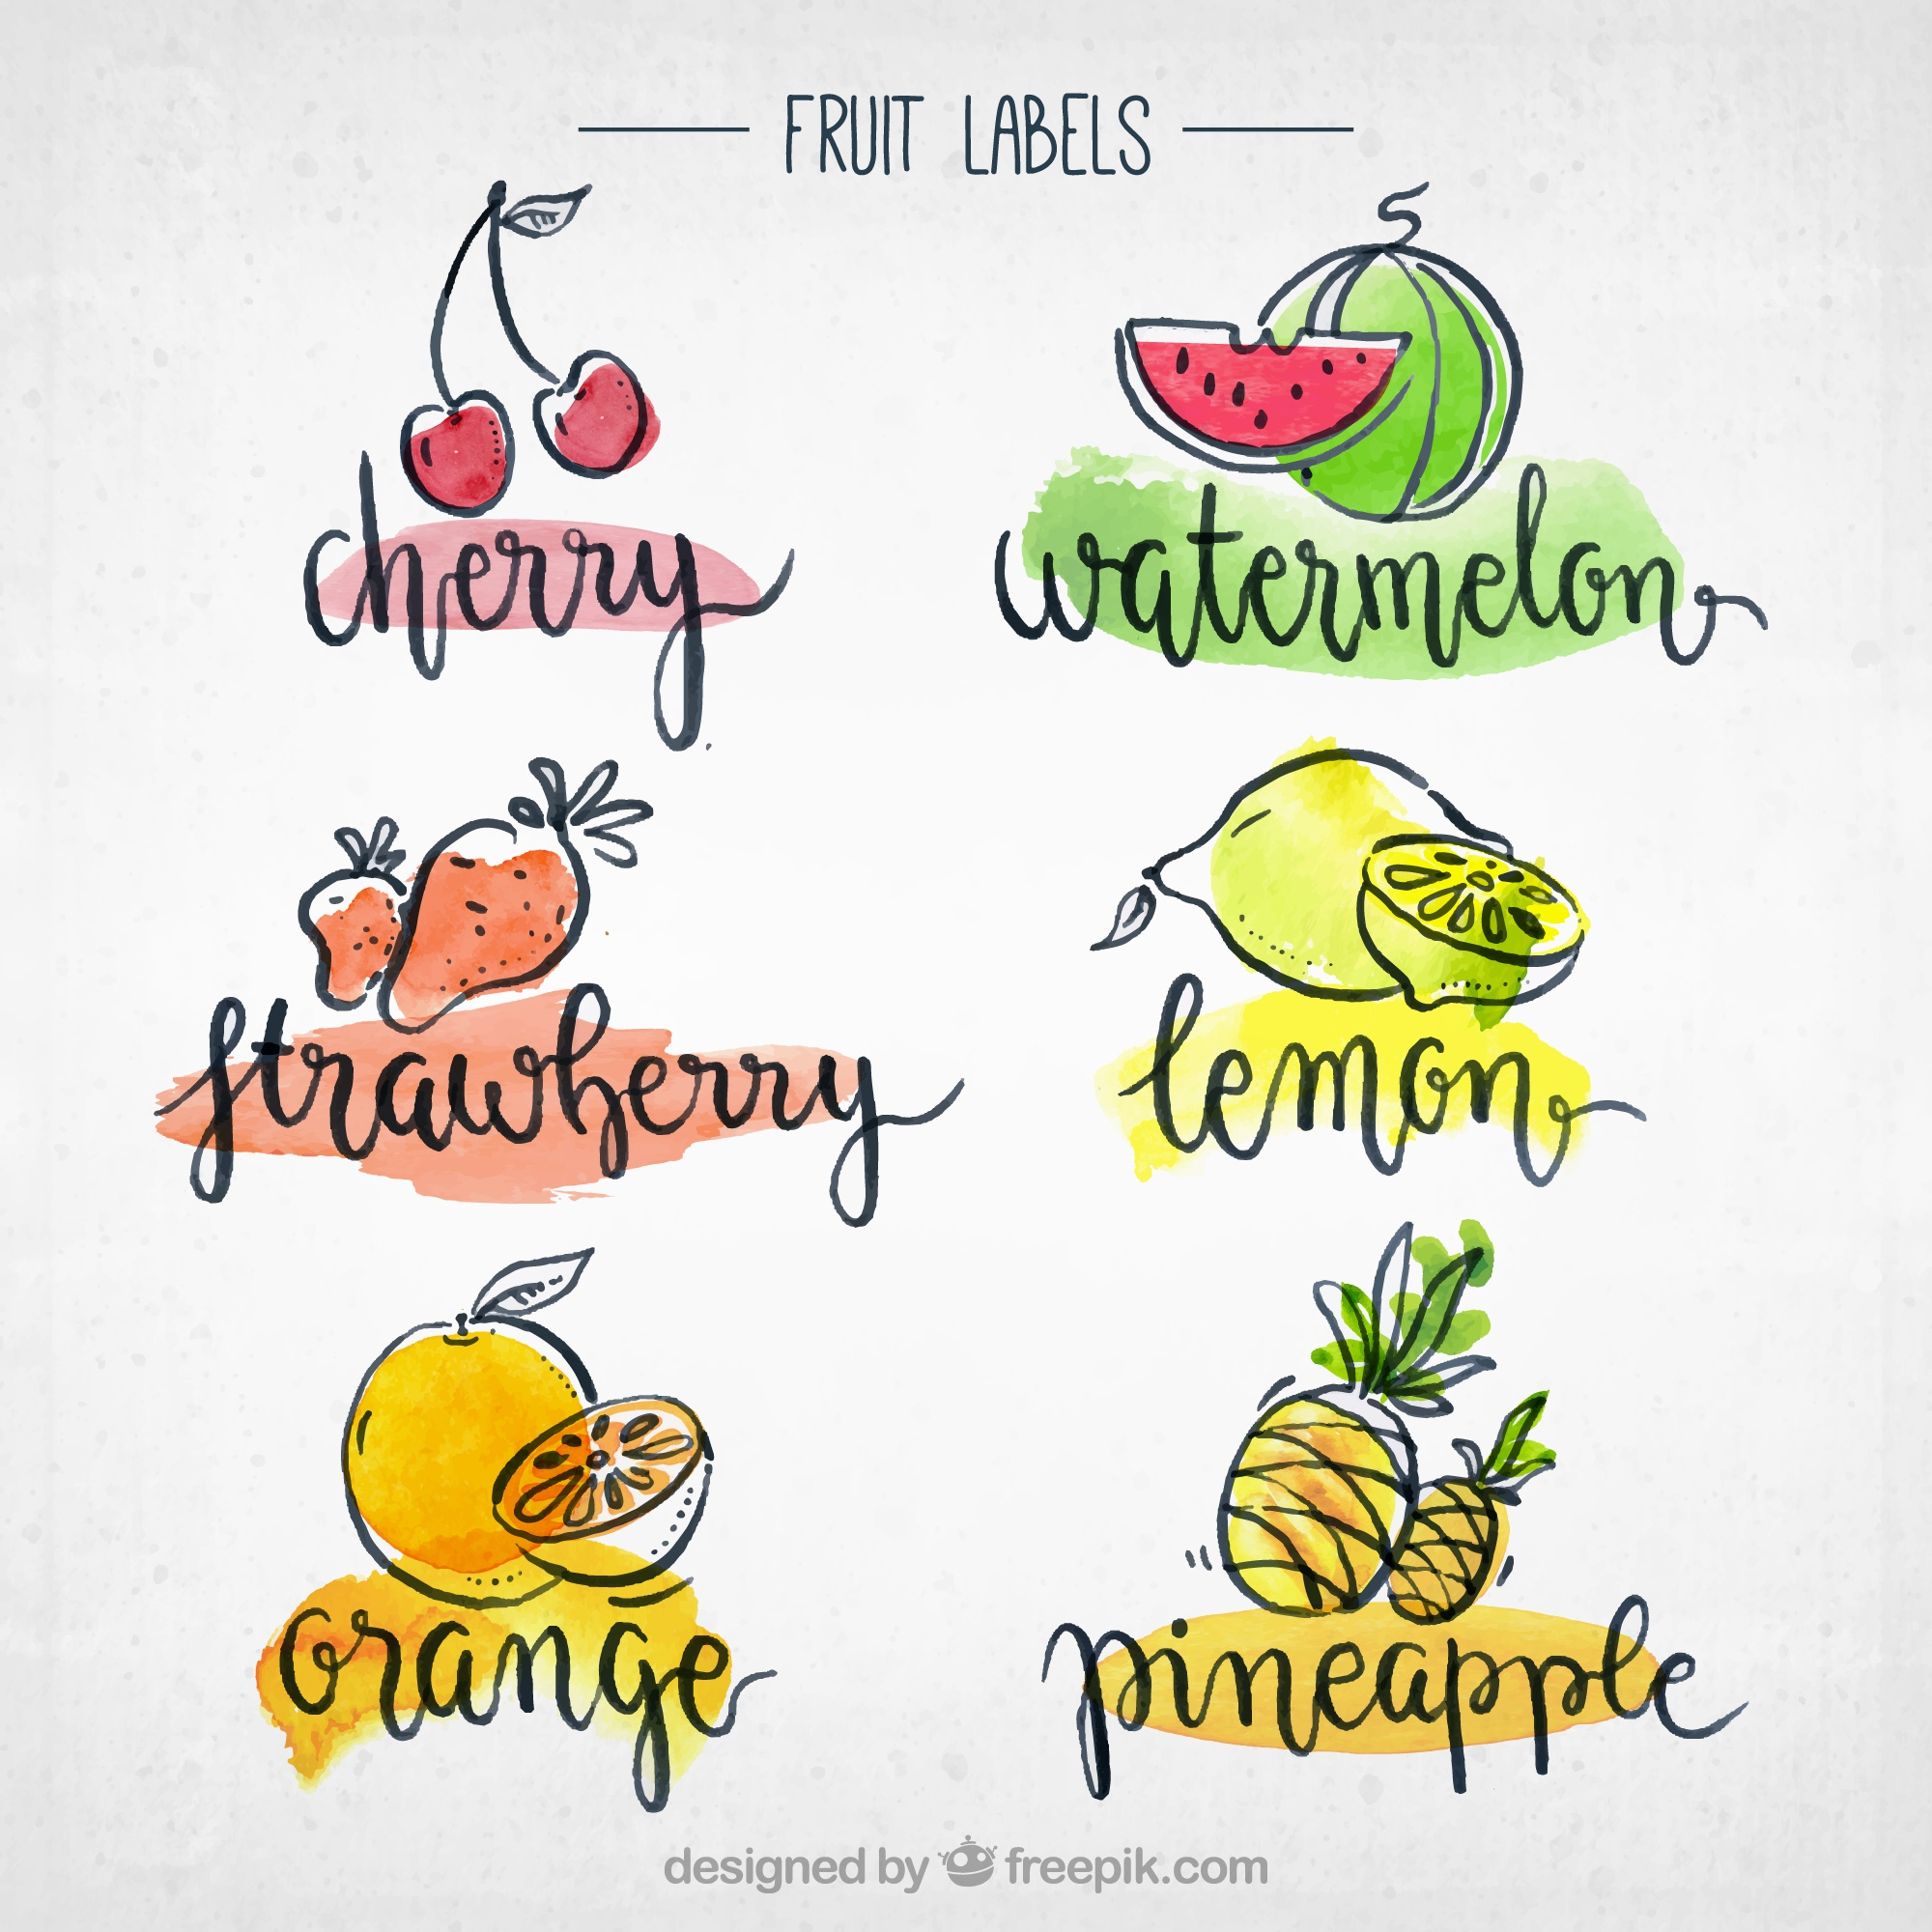 Fruit labels collection